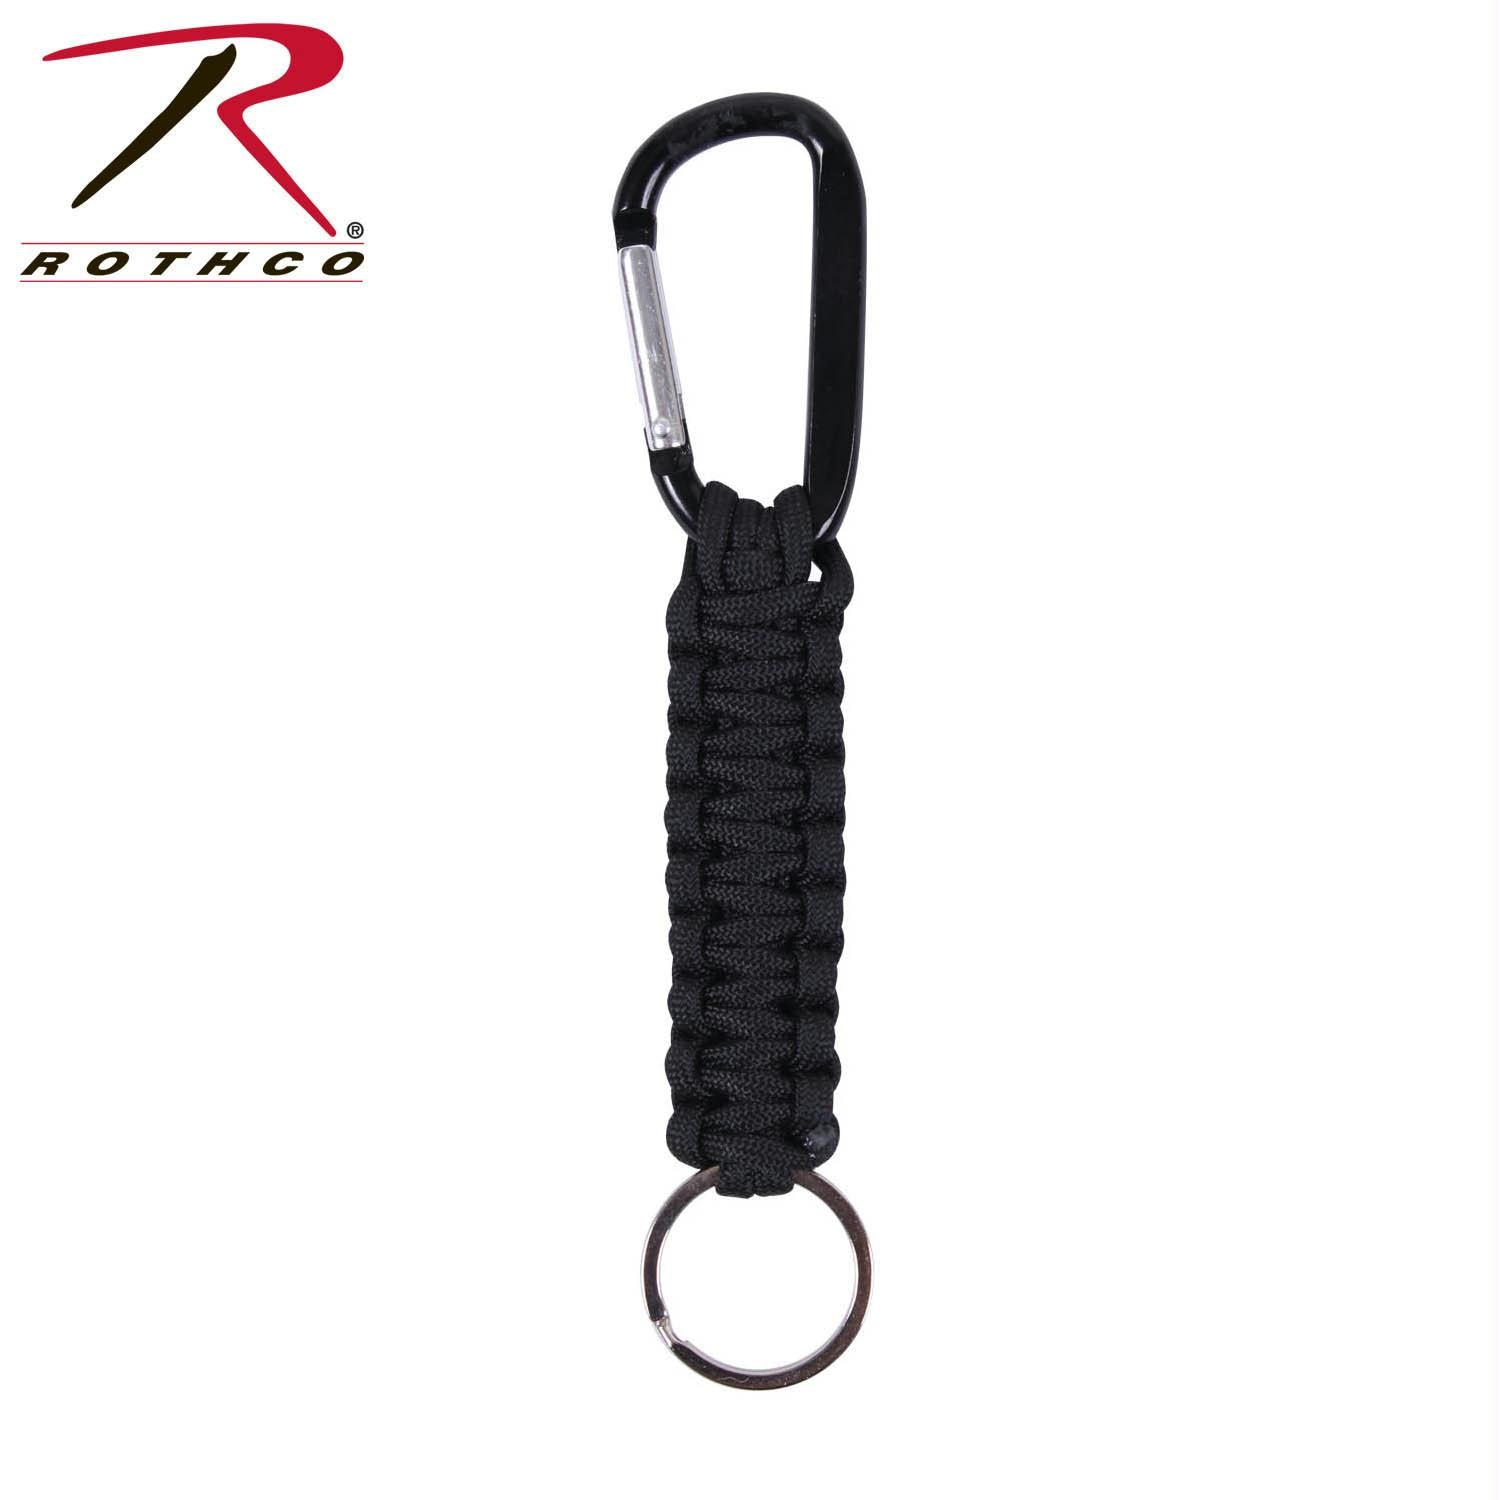 Rothco Paracord Keychain with Carabiner - Black